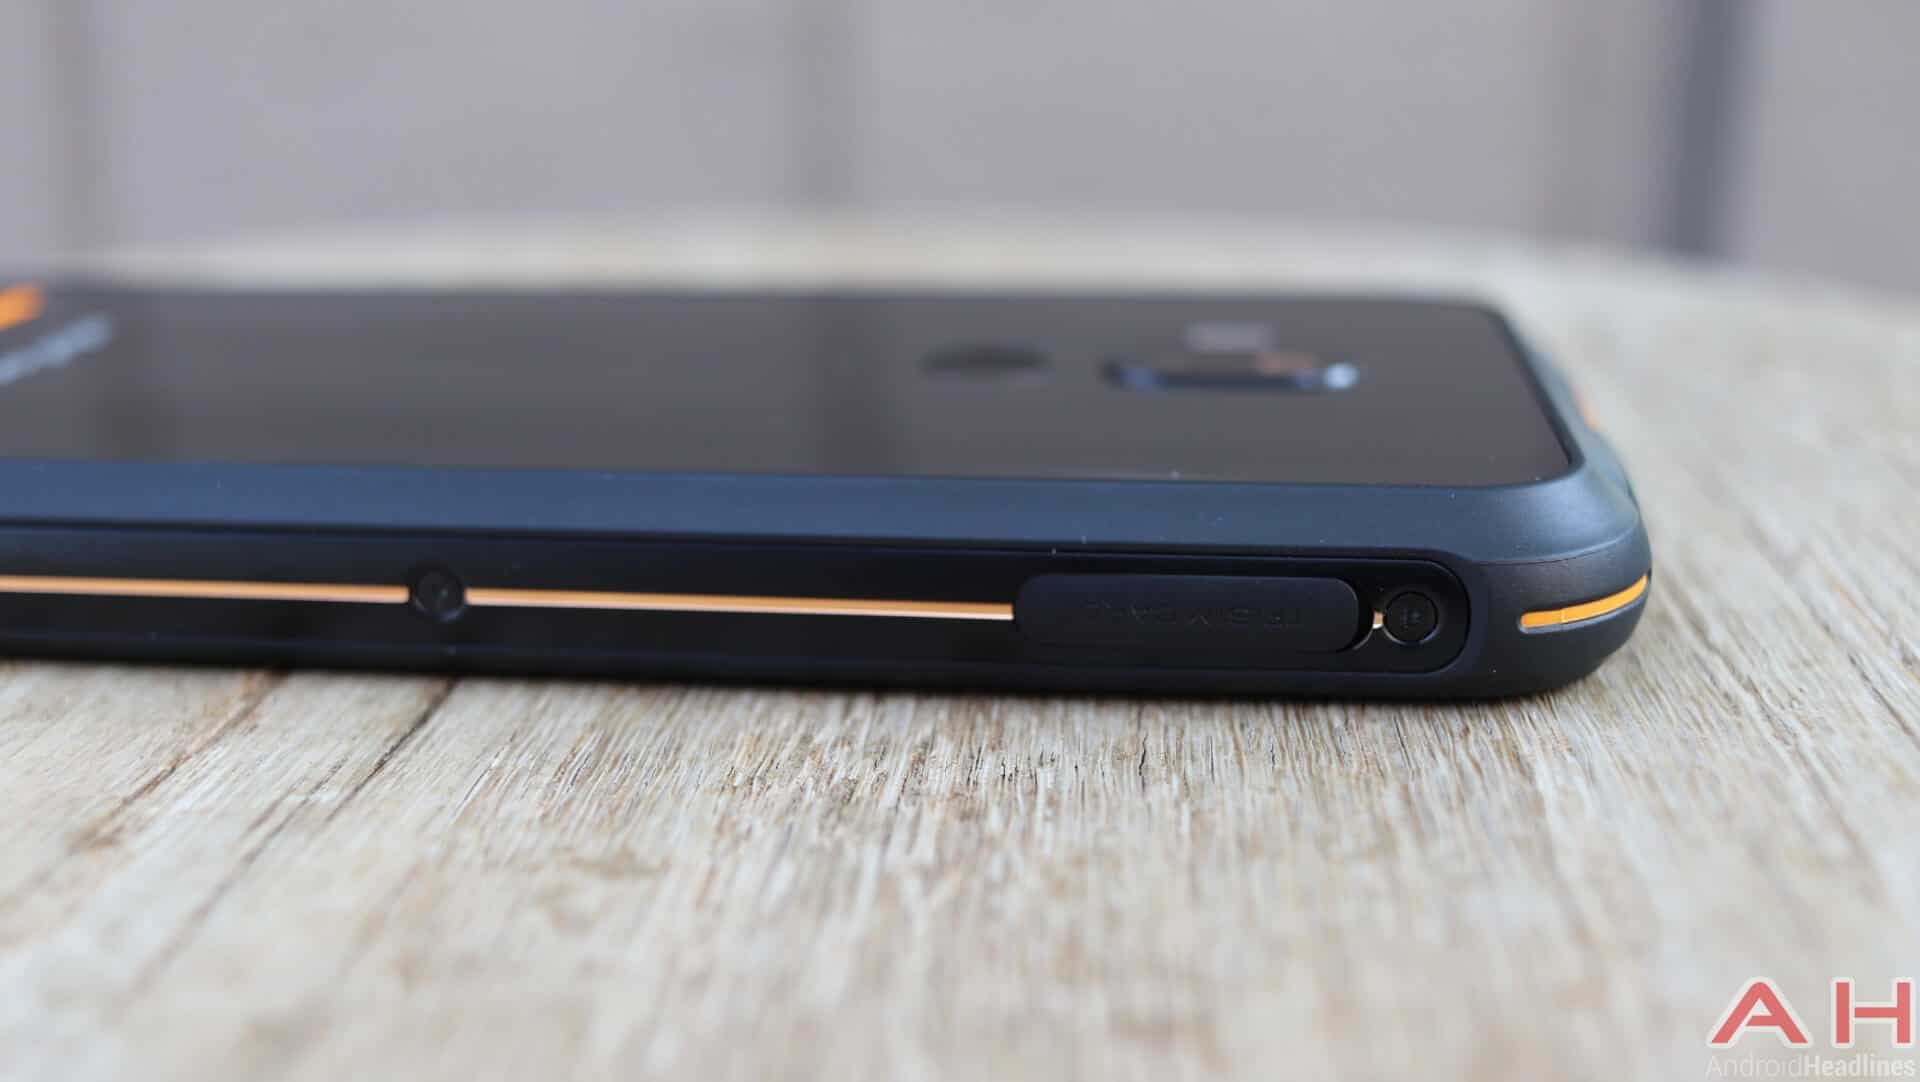 Ulefone Armor 5 Review Hardware Gallery AH 04